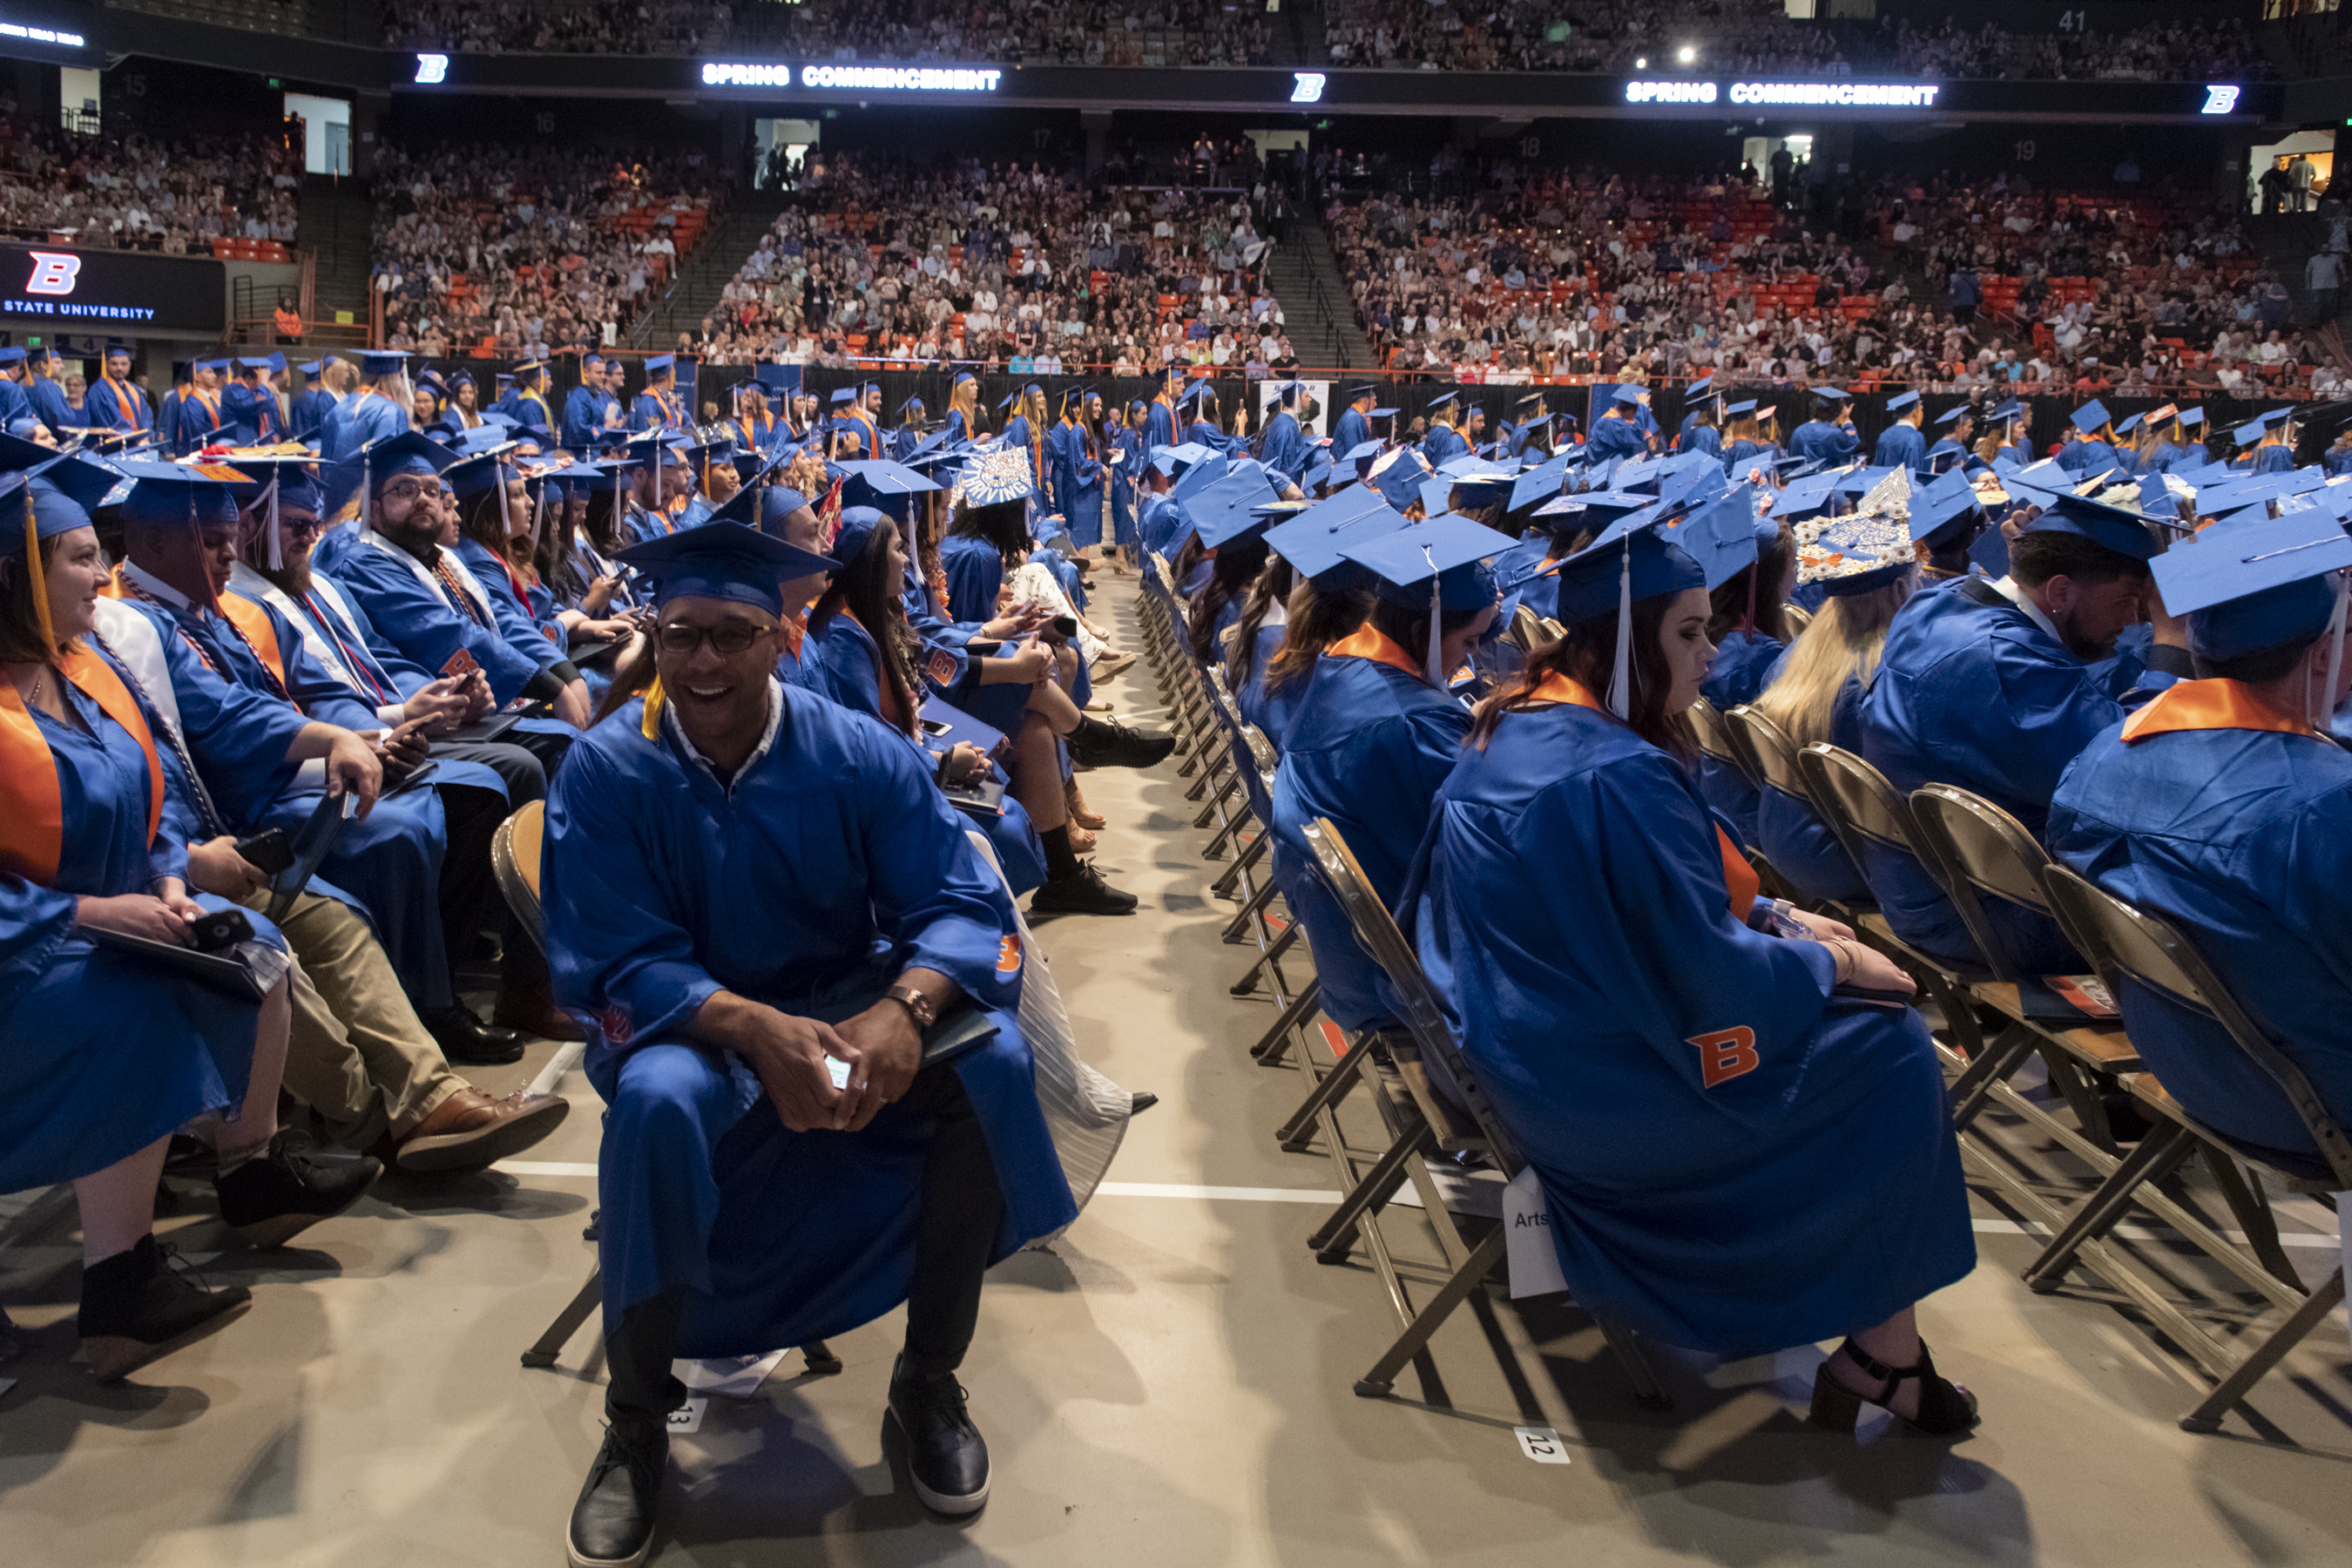 Boise State Spring Commencement 2019, morning ceremony, photo Patrick Sweeney